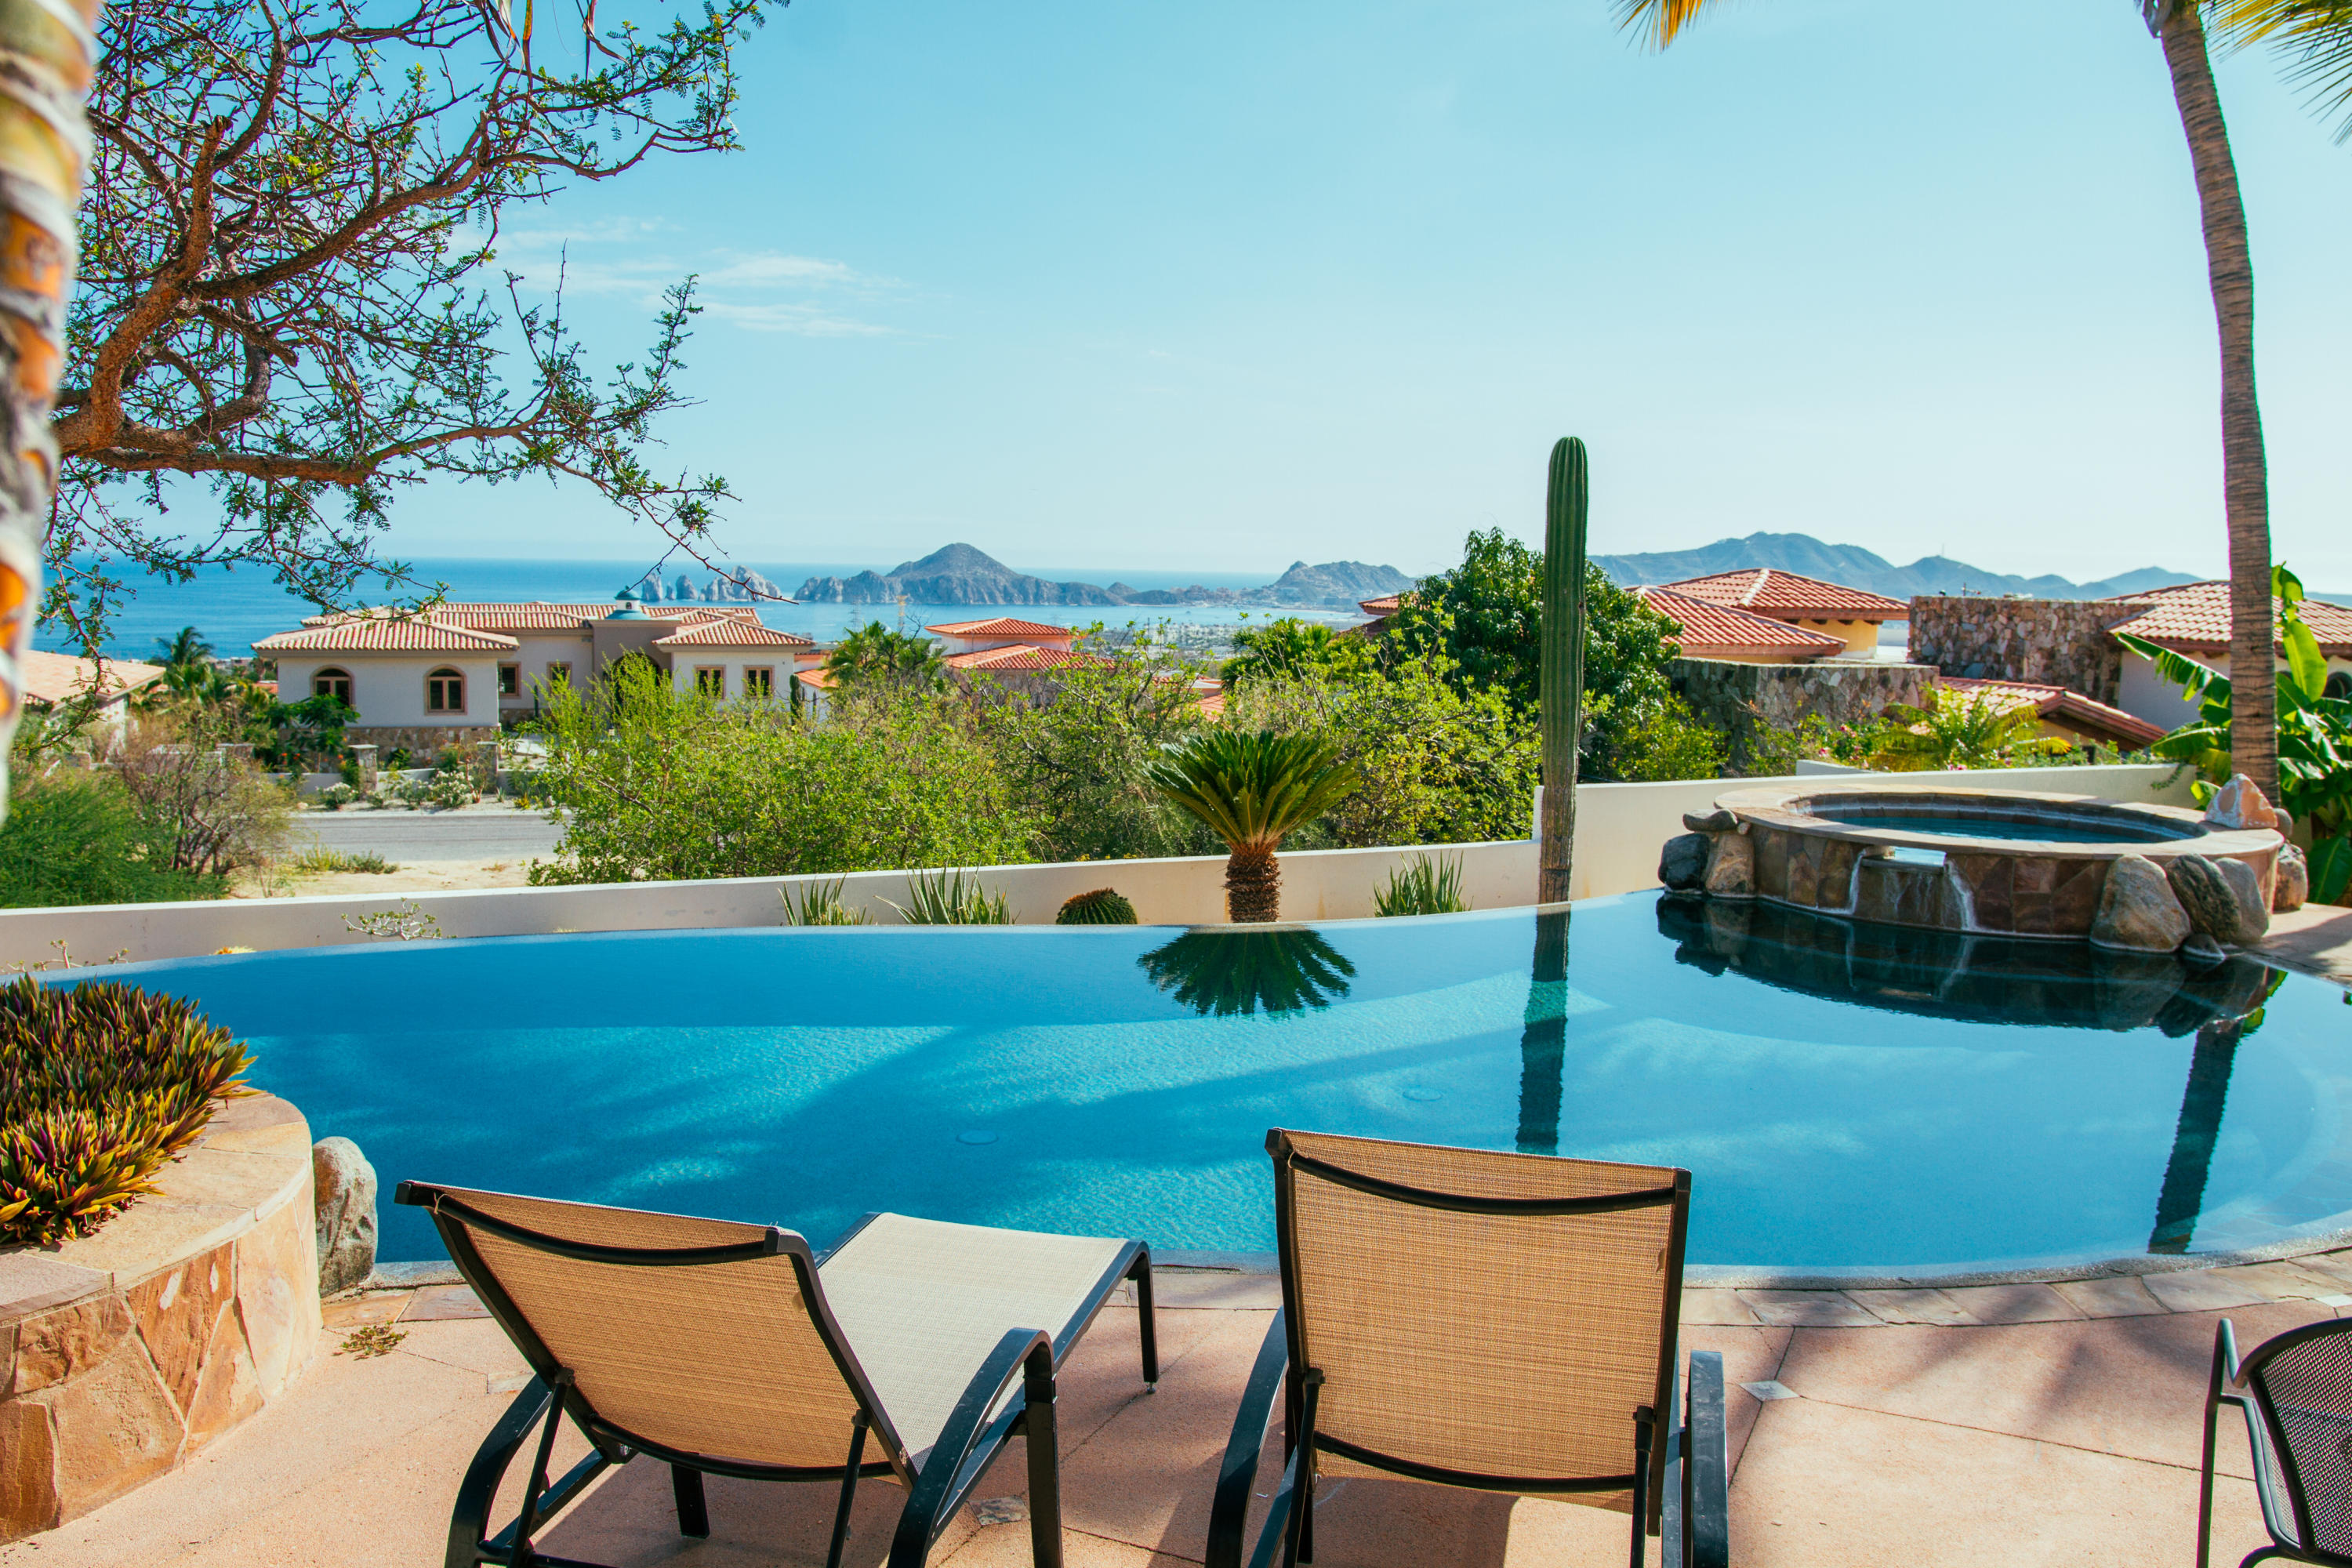 Casa Paraisio - Best Views in Cabo,, CSL Cor-Inland